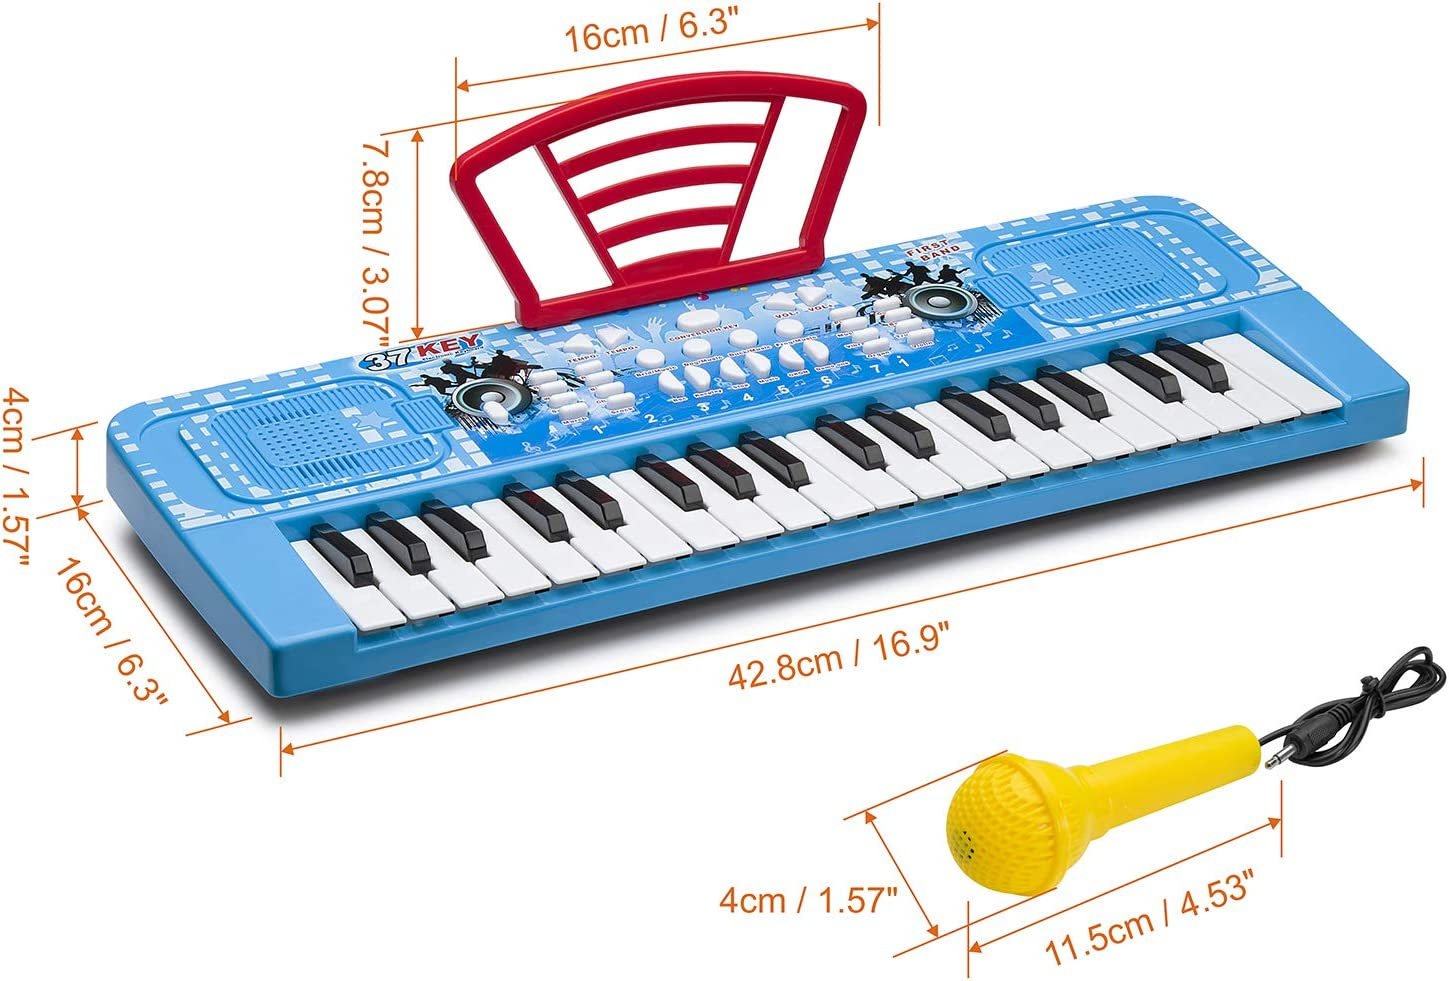 ROFAY Kids Piano 37 Keys Multi-Function Electronic Organ Musical Kids Piano Teaching Keyboard for Toddler Early Learning Educational with MP3 Music Function for Kids Children Toys